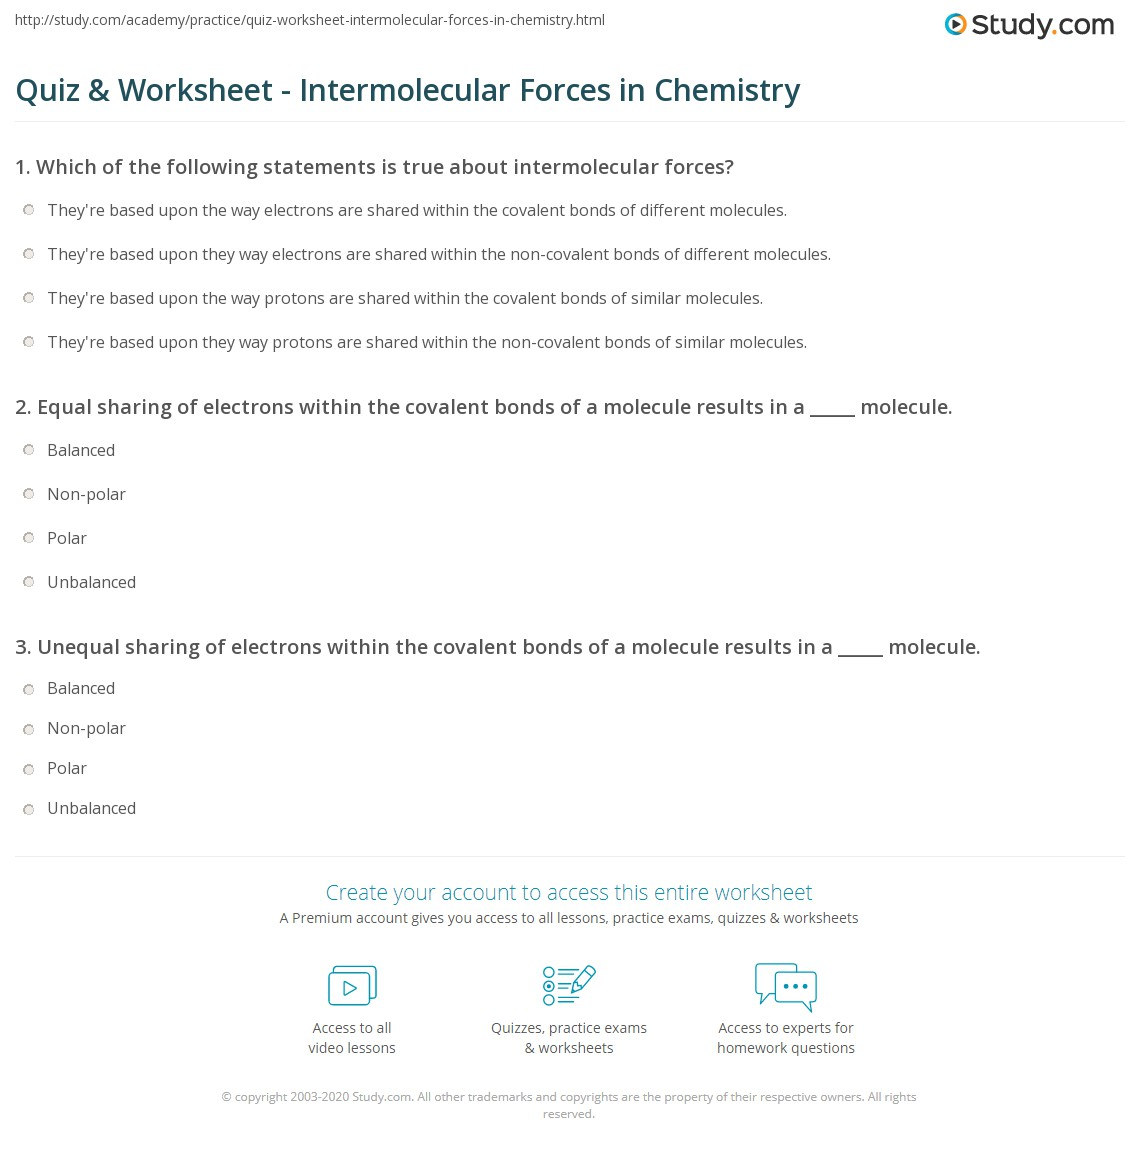 Free Worksheet Intermolecular Forces Worksheet quiz worksheet intermolecular forces in chemistry study com print definition types examples worksheet